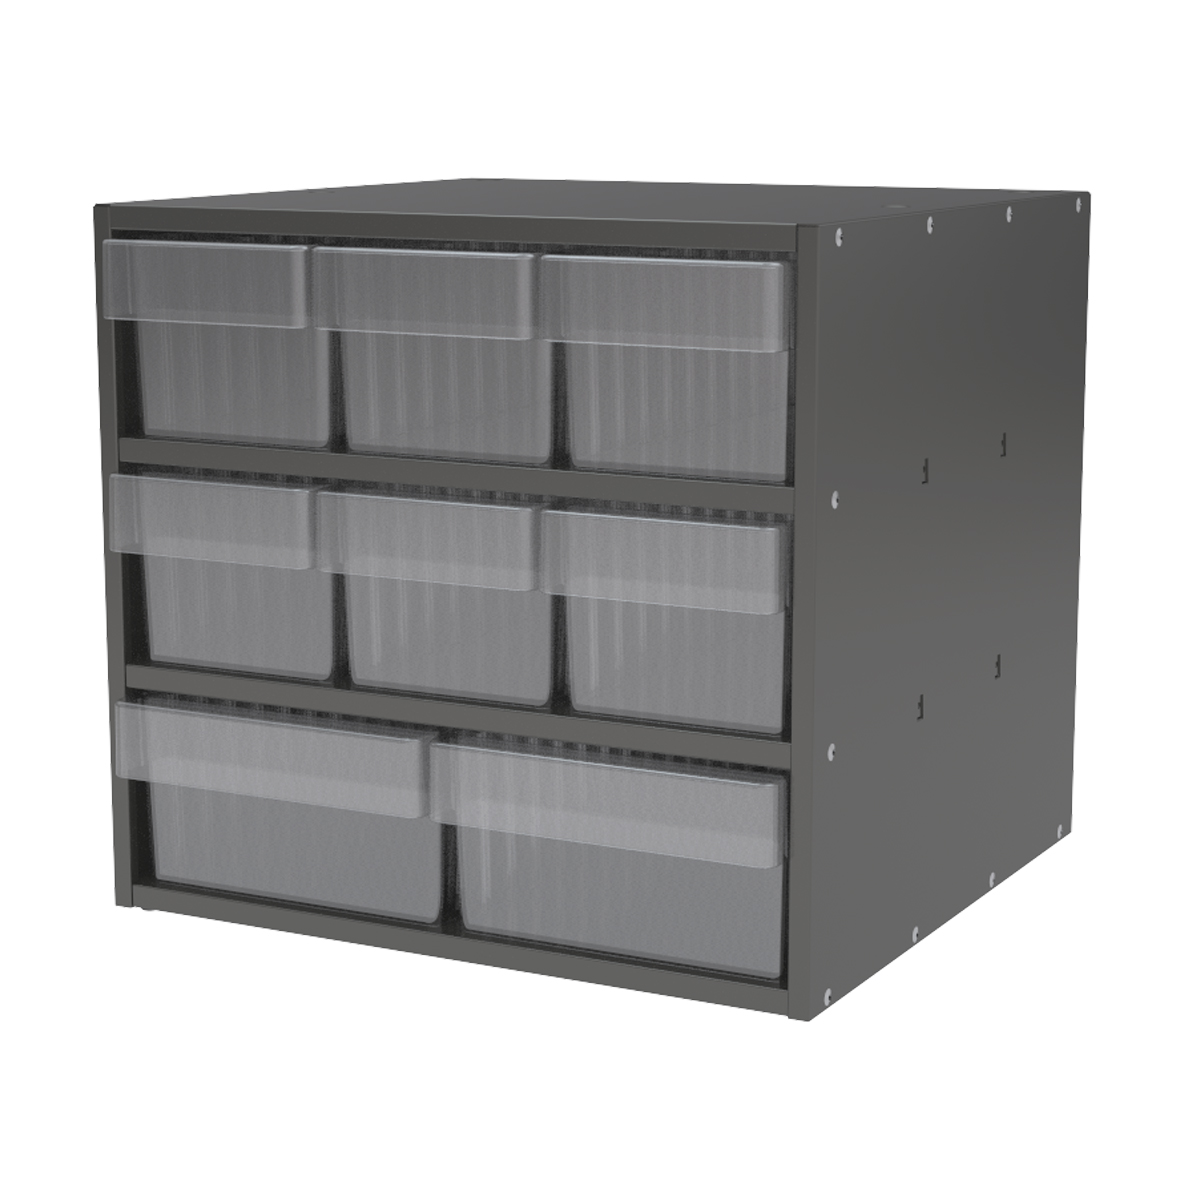 Item DISCONTINUED by Manufacturer.  Modular Cabinet, 18x17x16, 8 Drawers, Gray/Clear (AD1817CASTCRY).  This item sold in carton quantities of 1.